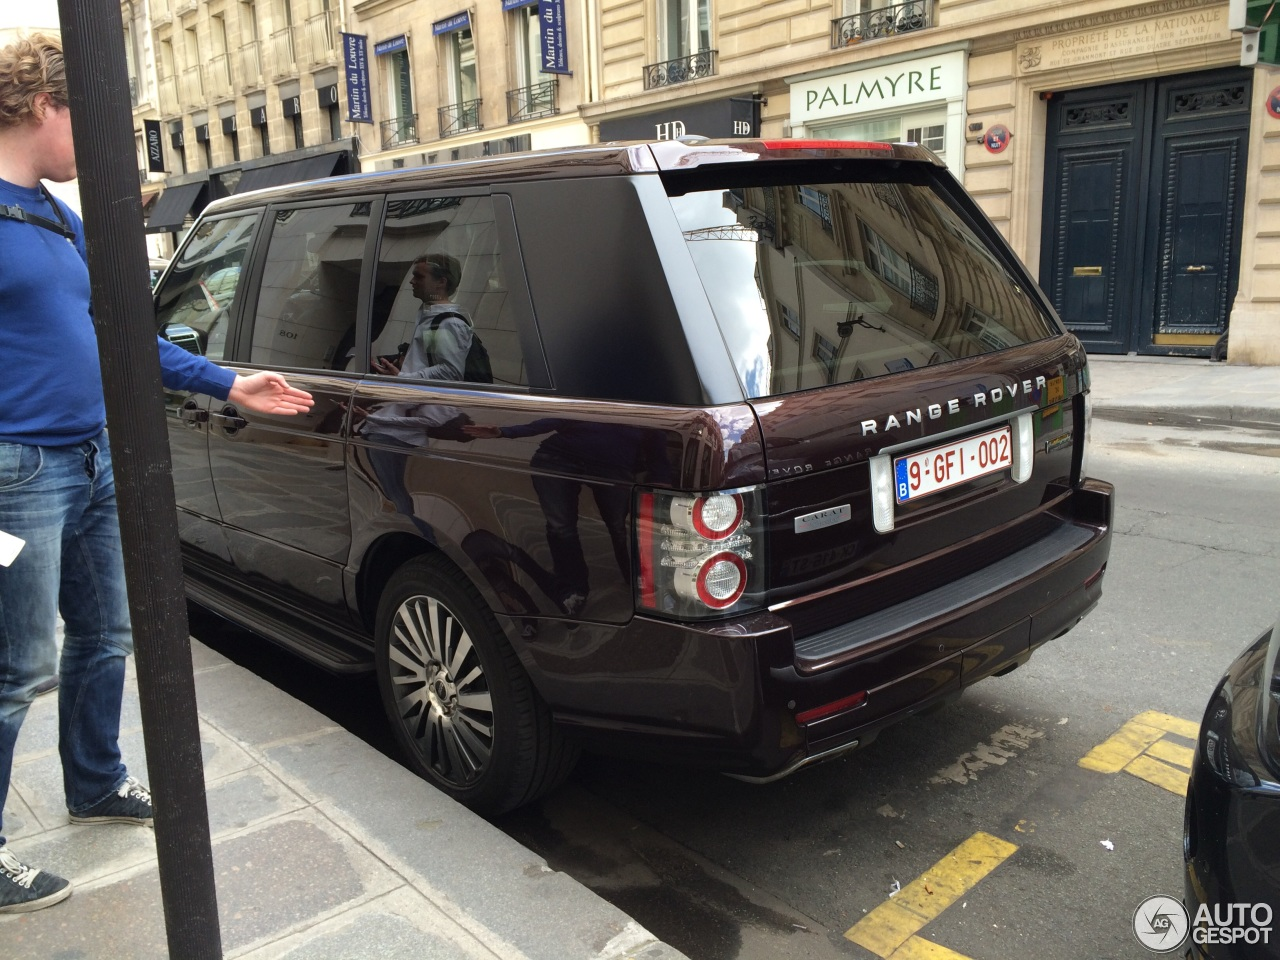 http://ag-spots-2015.o.auroraobjects.eu/2015/04/18/land-rover-range-rover-autobiography-supercharged-ultimate-edition-ewb-carat-duchatelet-c880618042015083831_3.jpg